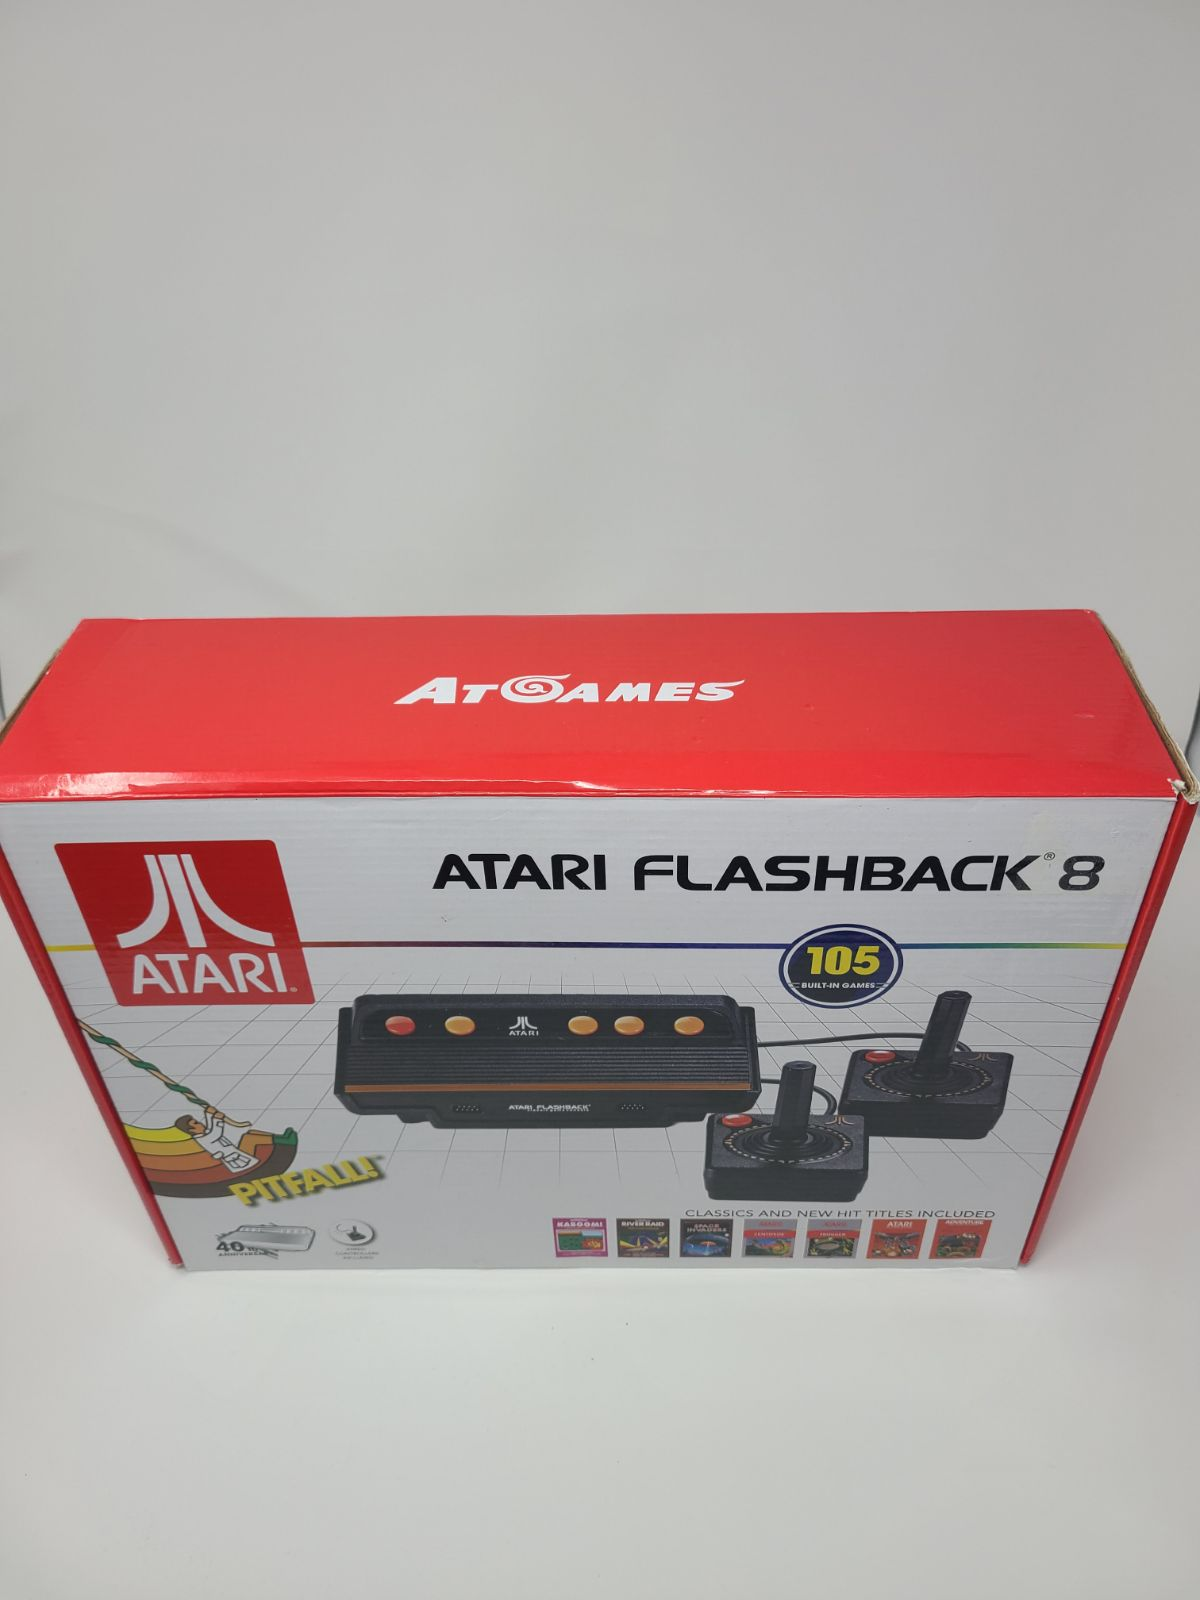 Atari Flashback 8 (New - Never Opended)